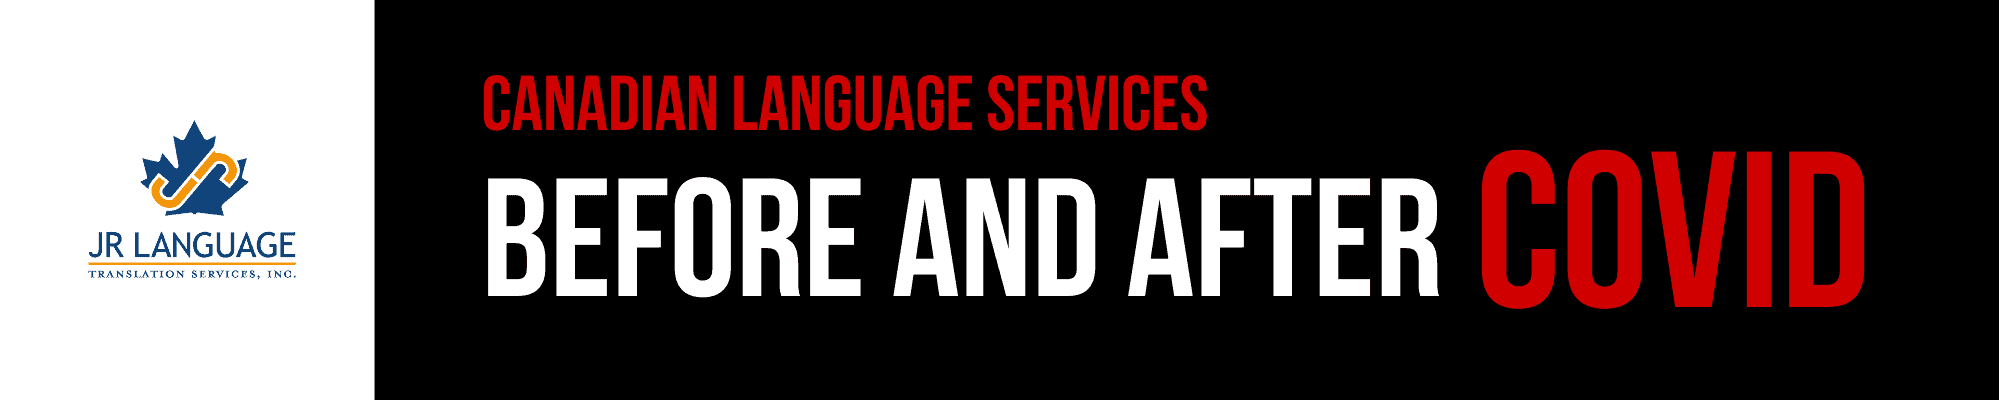 Translation Services in Toronto, Canada